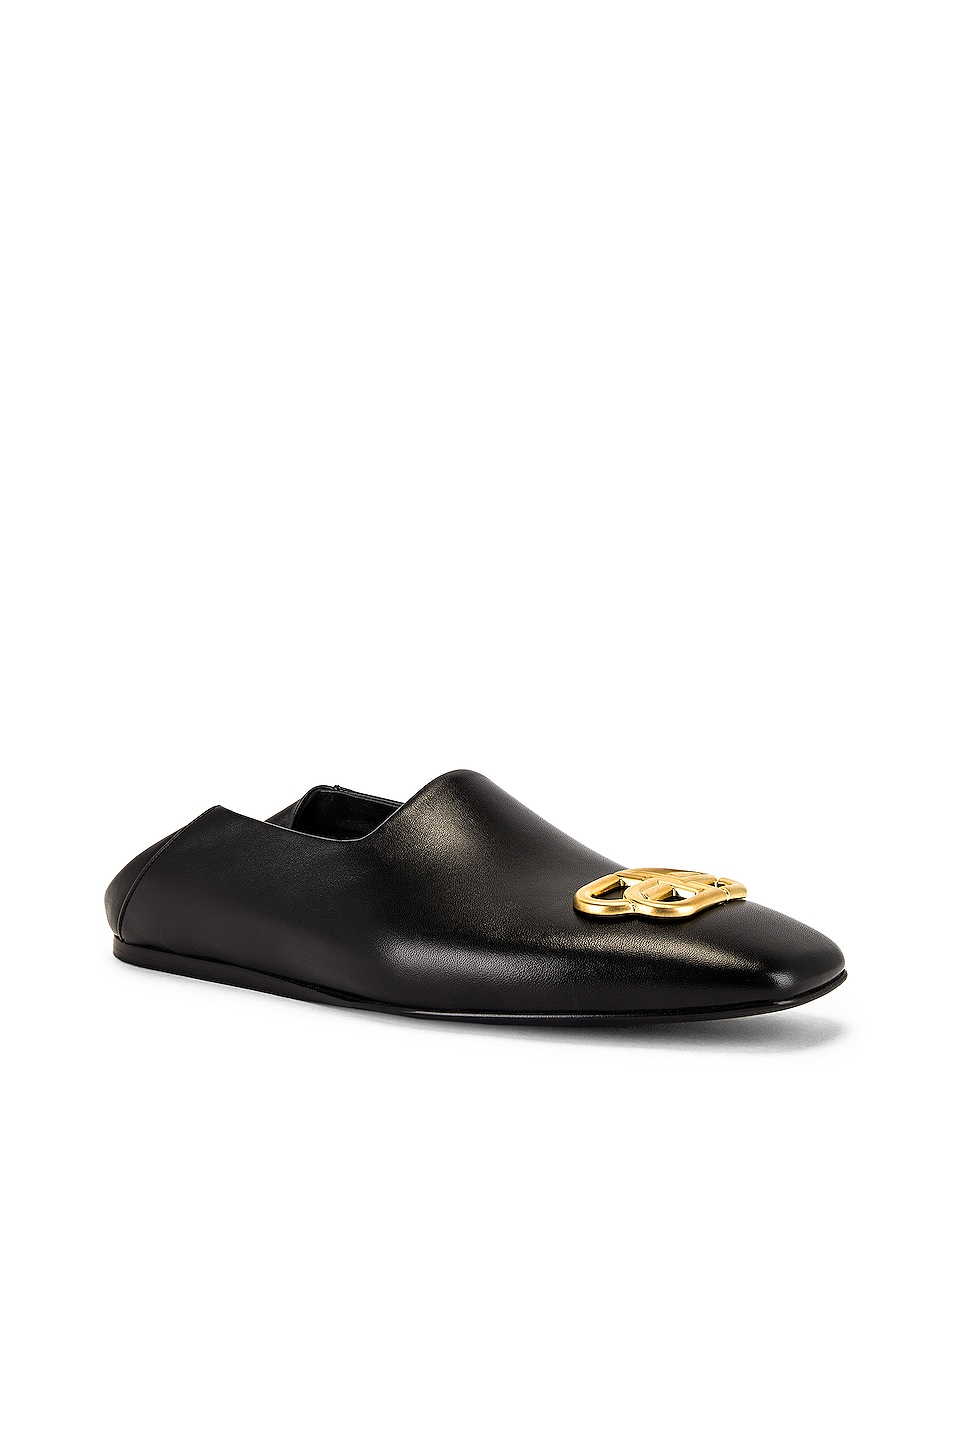 Image 1 of Balenciaga Cosy Bb Loafer F005 in Black & Gold